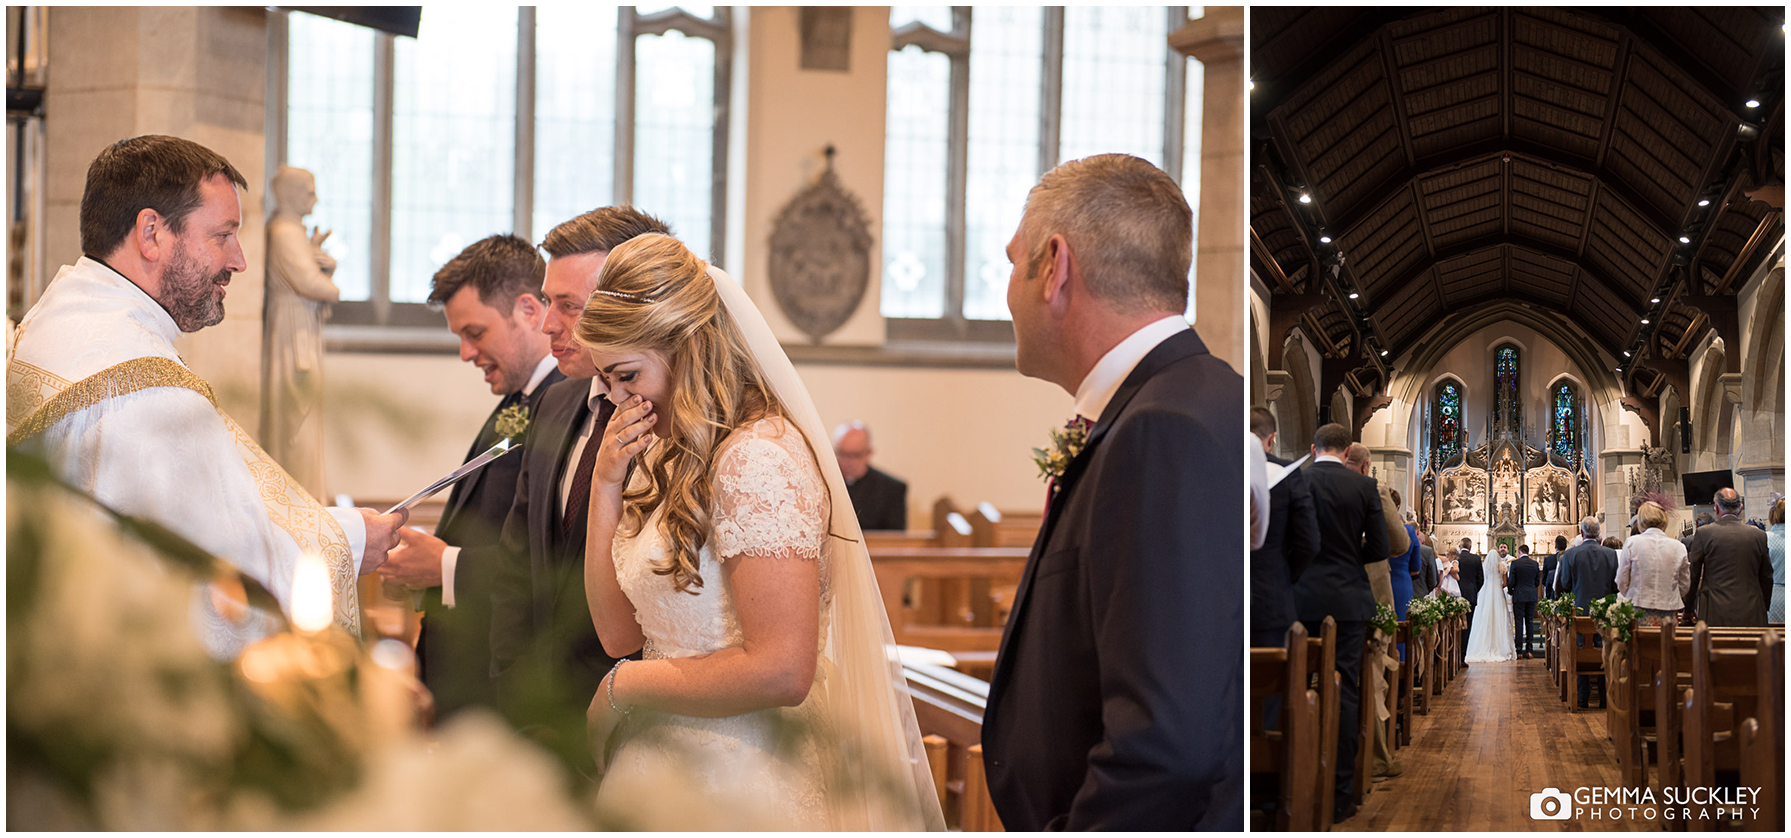 st-fisher-chuch-Harrogate-wedding-©gemmasuckleyphotography.jpg